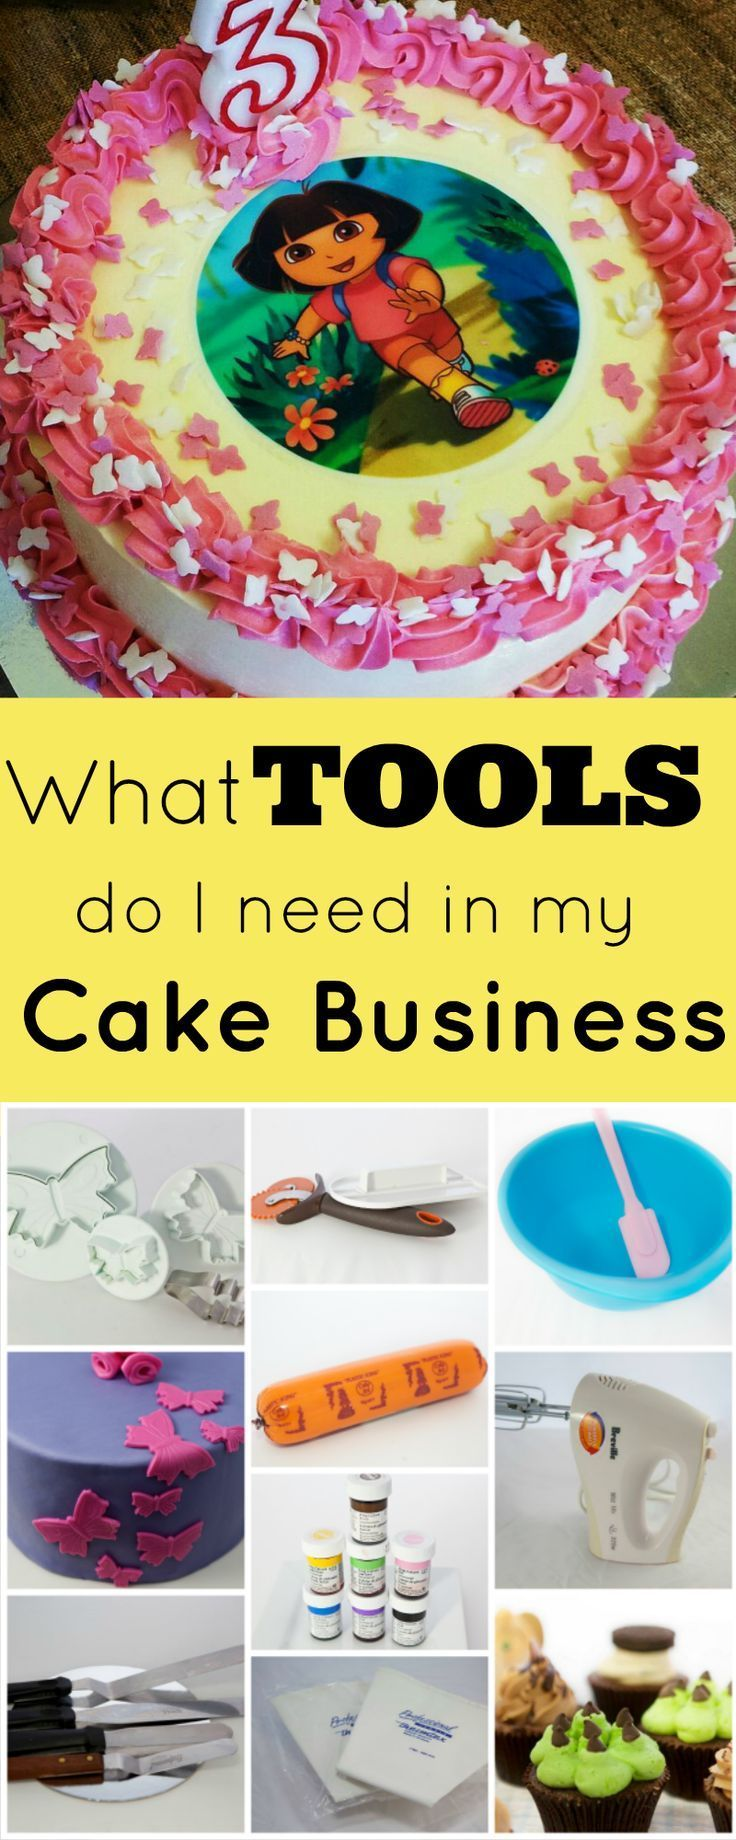 How To Start A Cake Decorating Business From Scratch